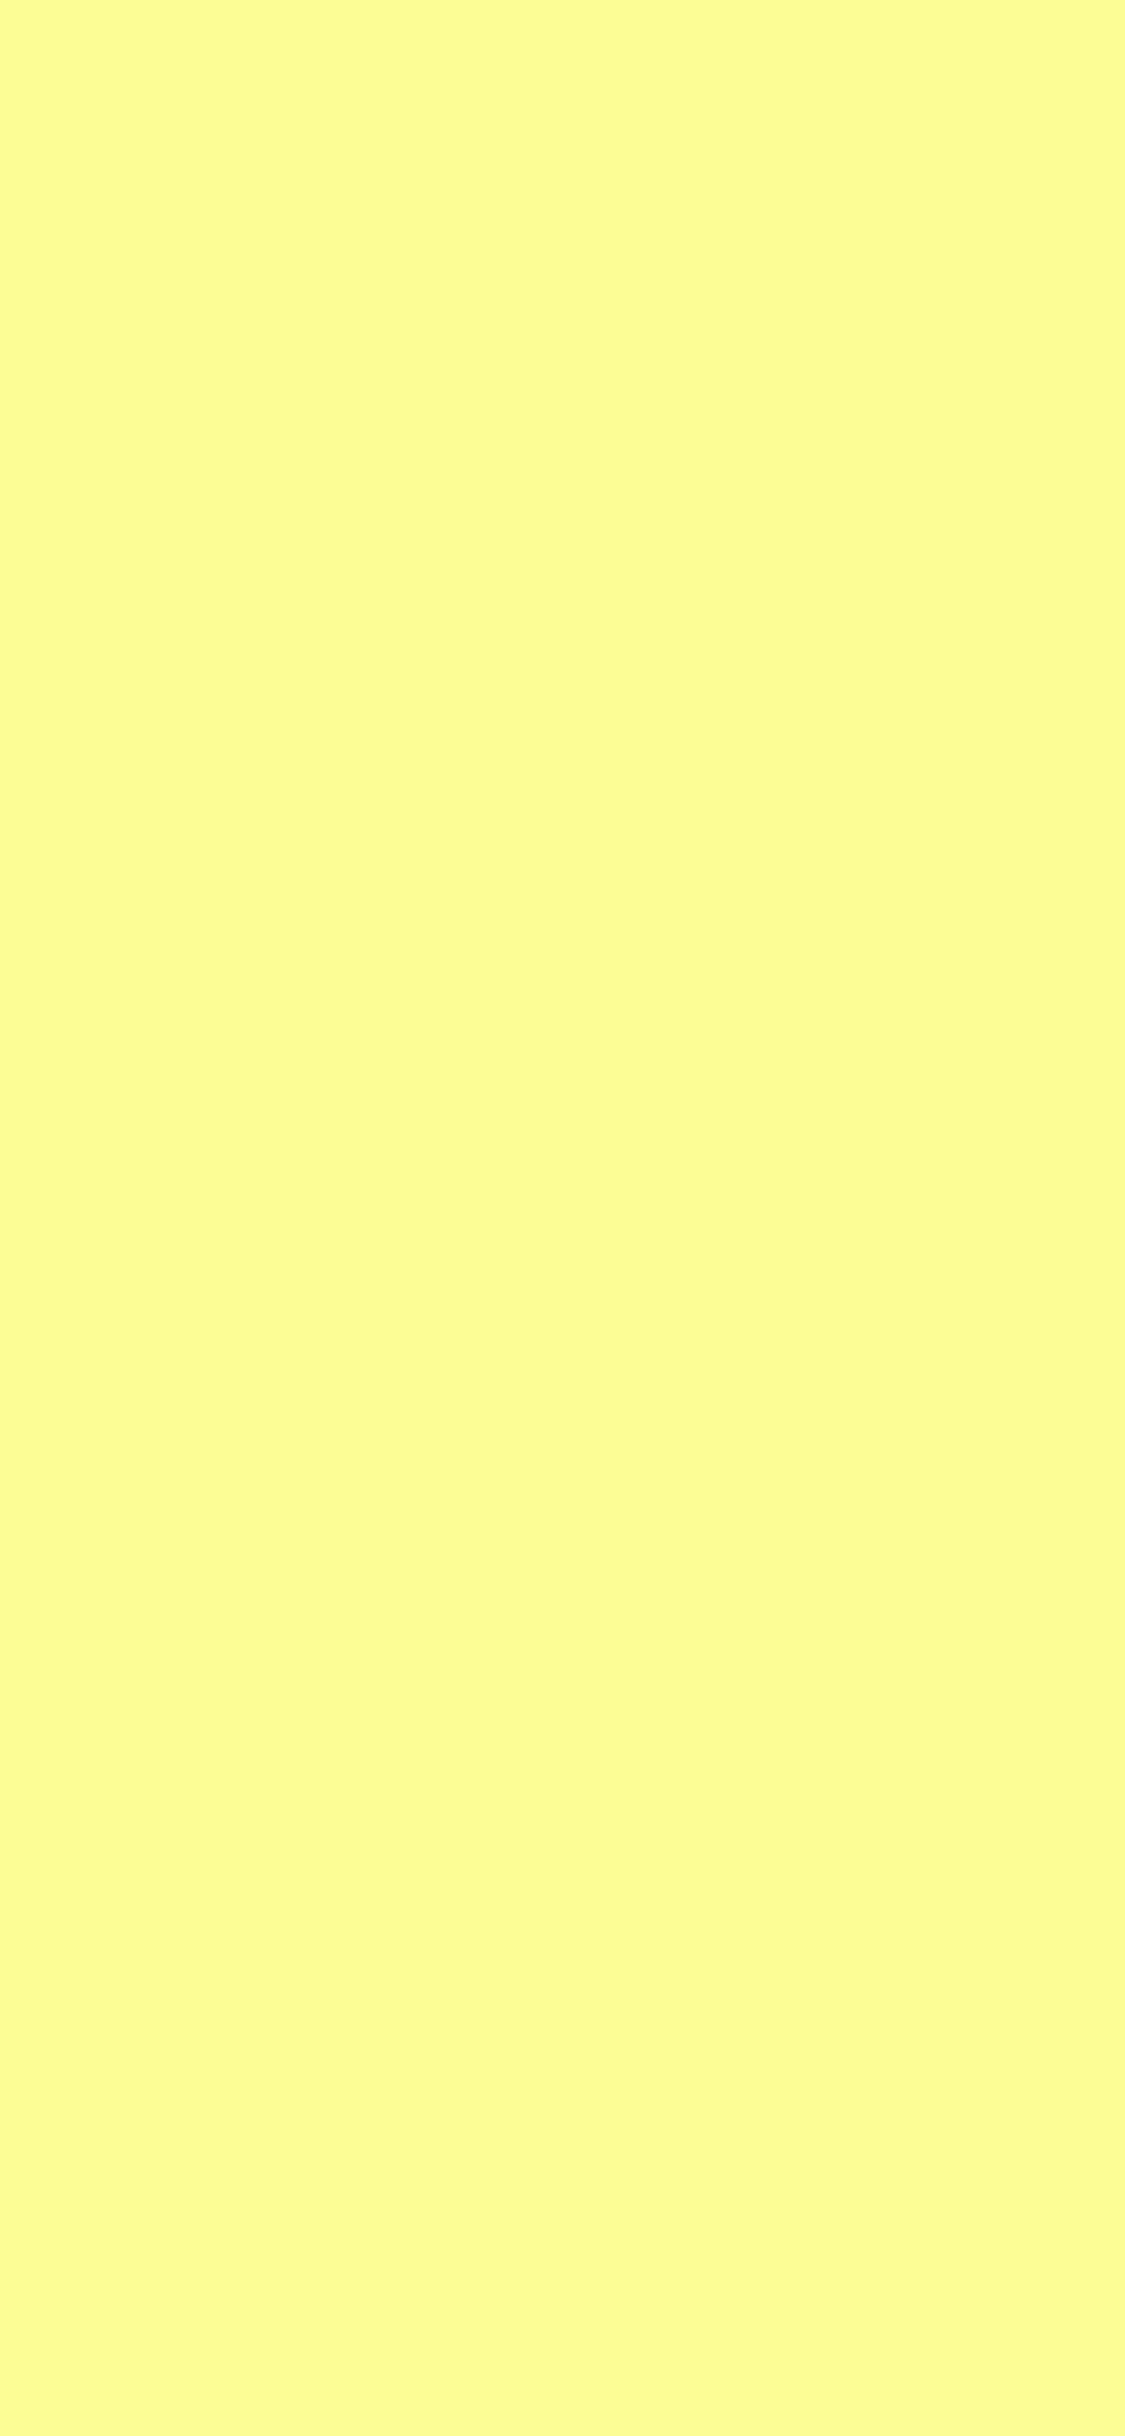 1125x2436 Pastel Yellow Solid Color Background